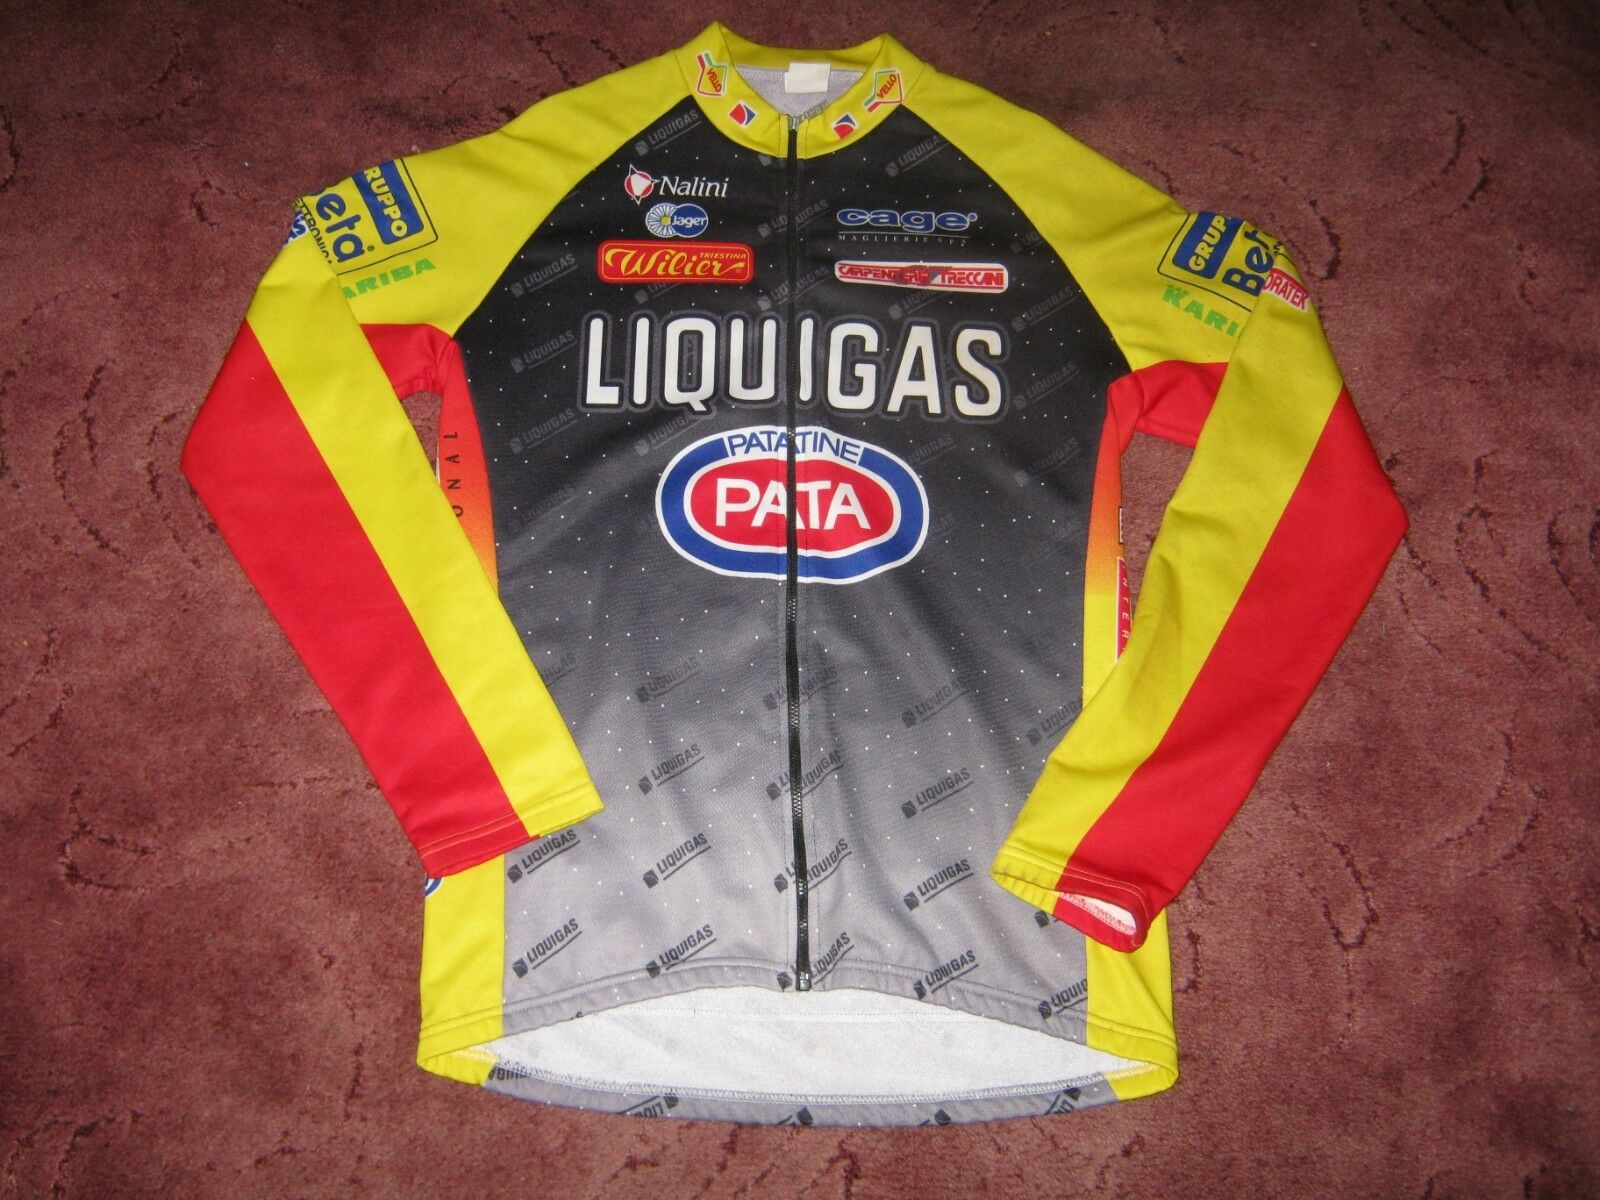 LIQUIGAS PATATINE  PATA WILIER NALINI ITALIAN L S CYCLING JERSEY [42 ]  outlet